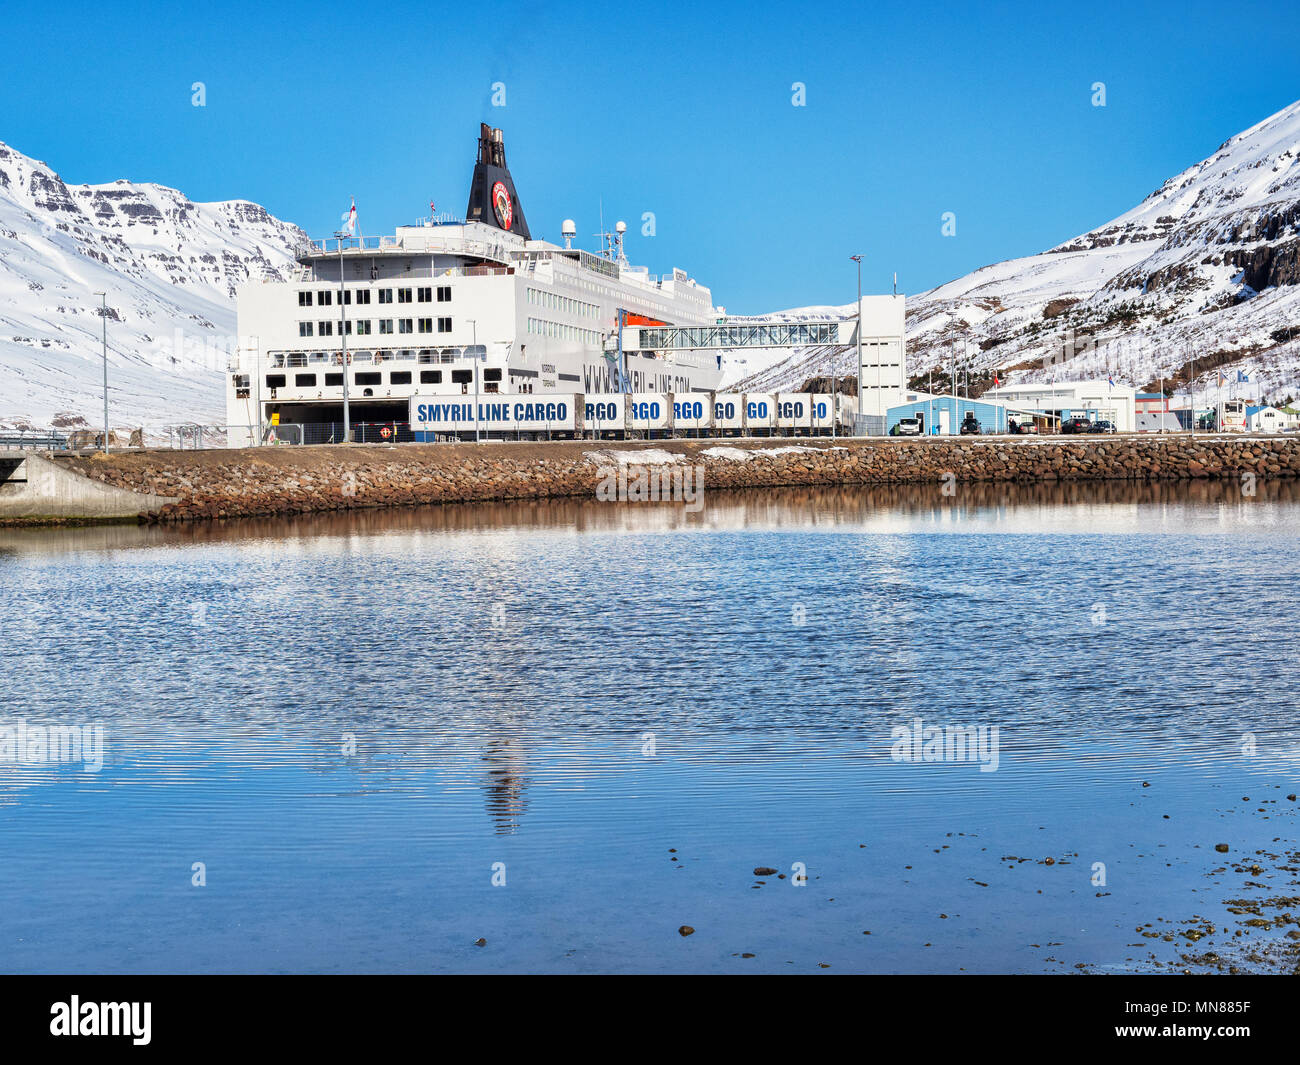 11 April 2018: Seydisfjordur, East Iceland - Smyril Line ferry MS Norrona in port on a bright spring day. - Stock Image